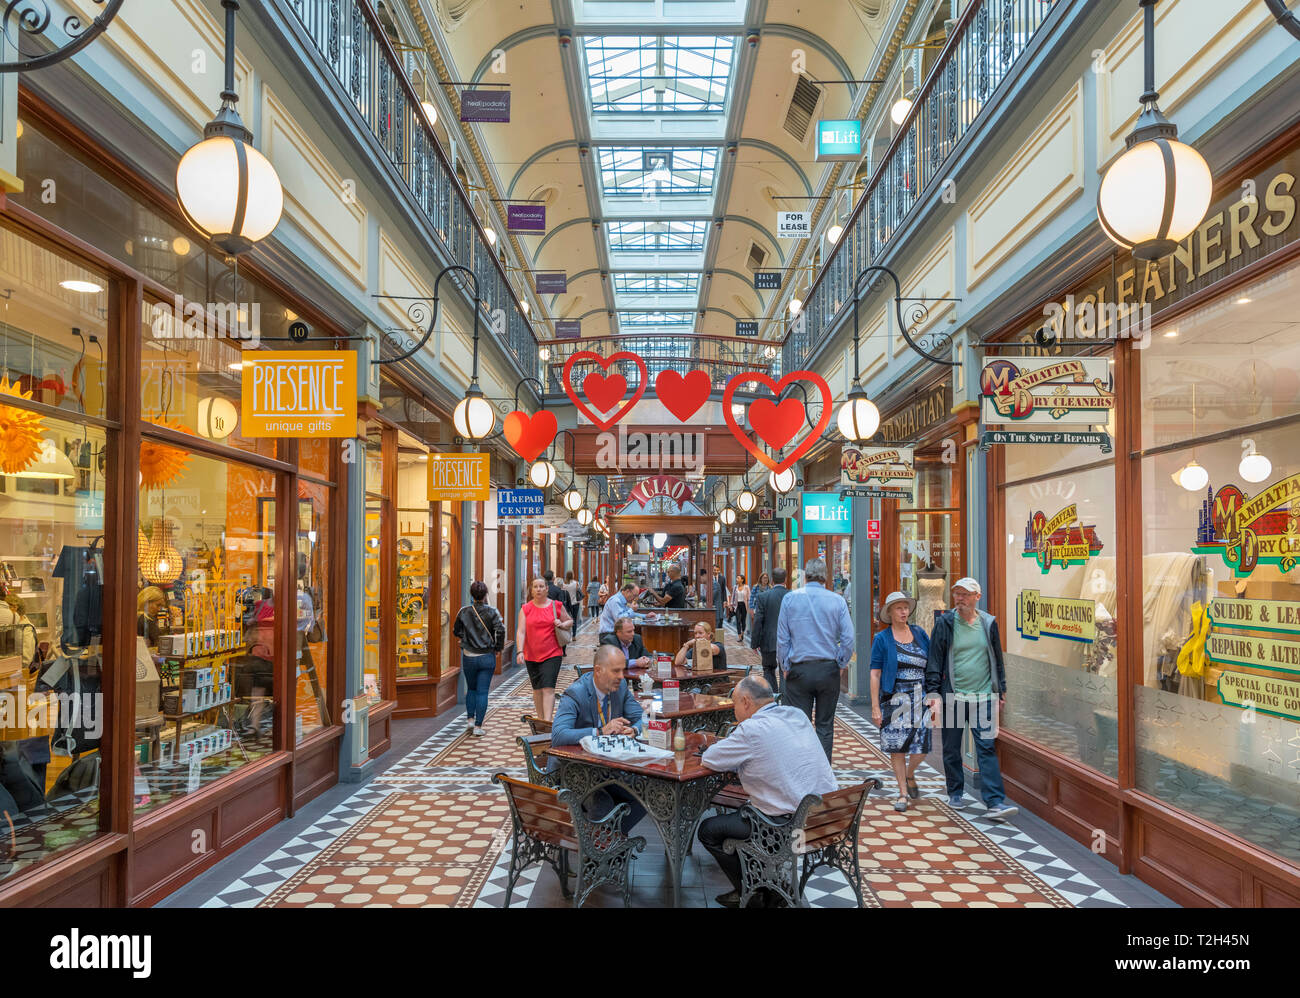 Adelaide, Australia. The Adelaide Arcade shopping centre in the Central Business District (CBD), Adelaide, South Australia, Australia - Stock Image